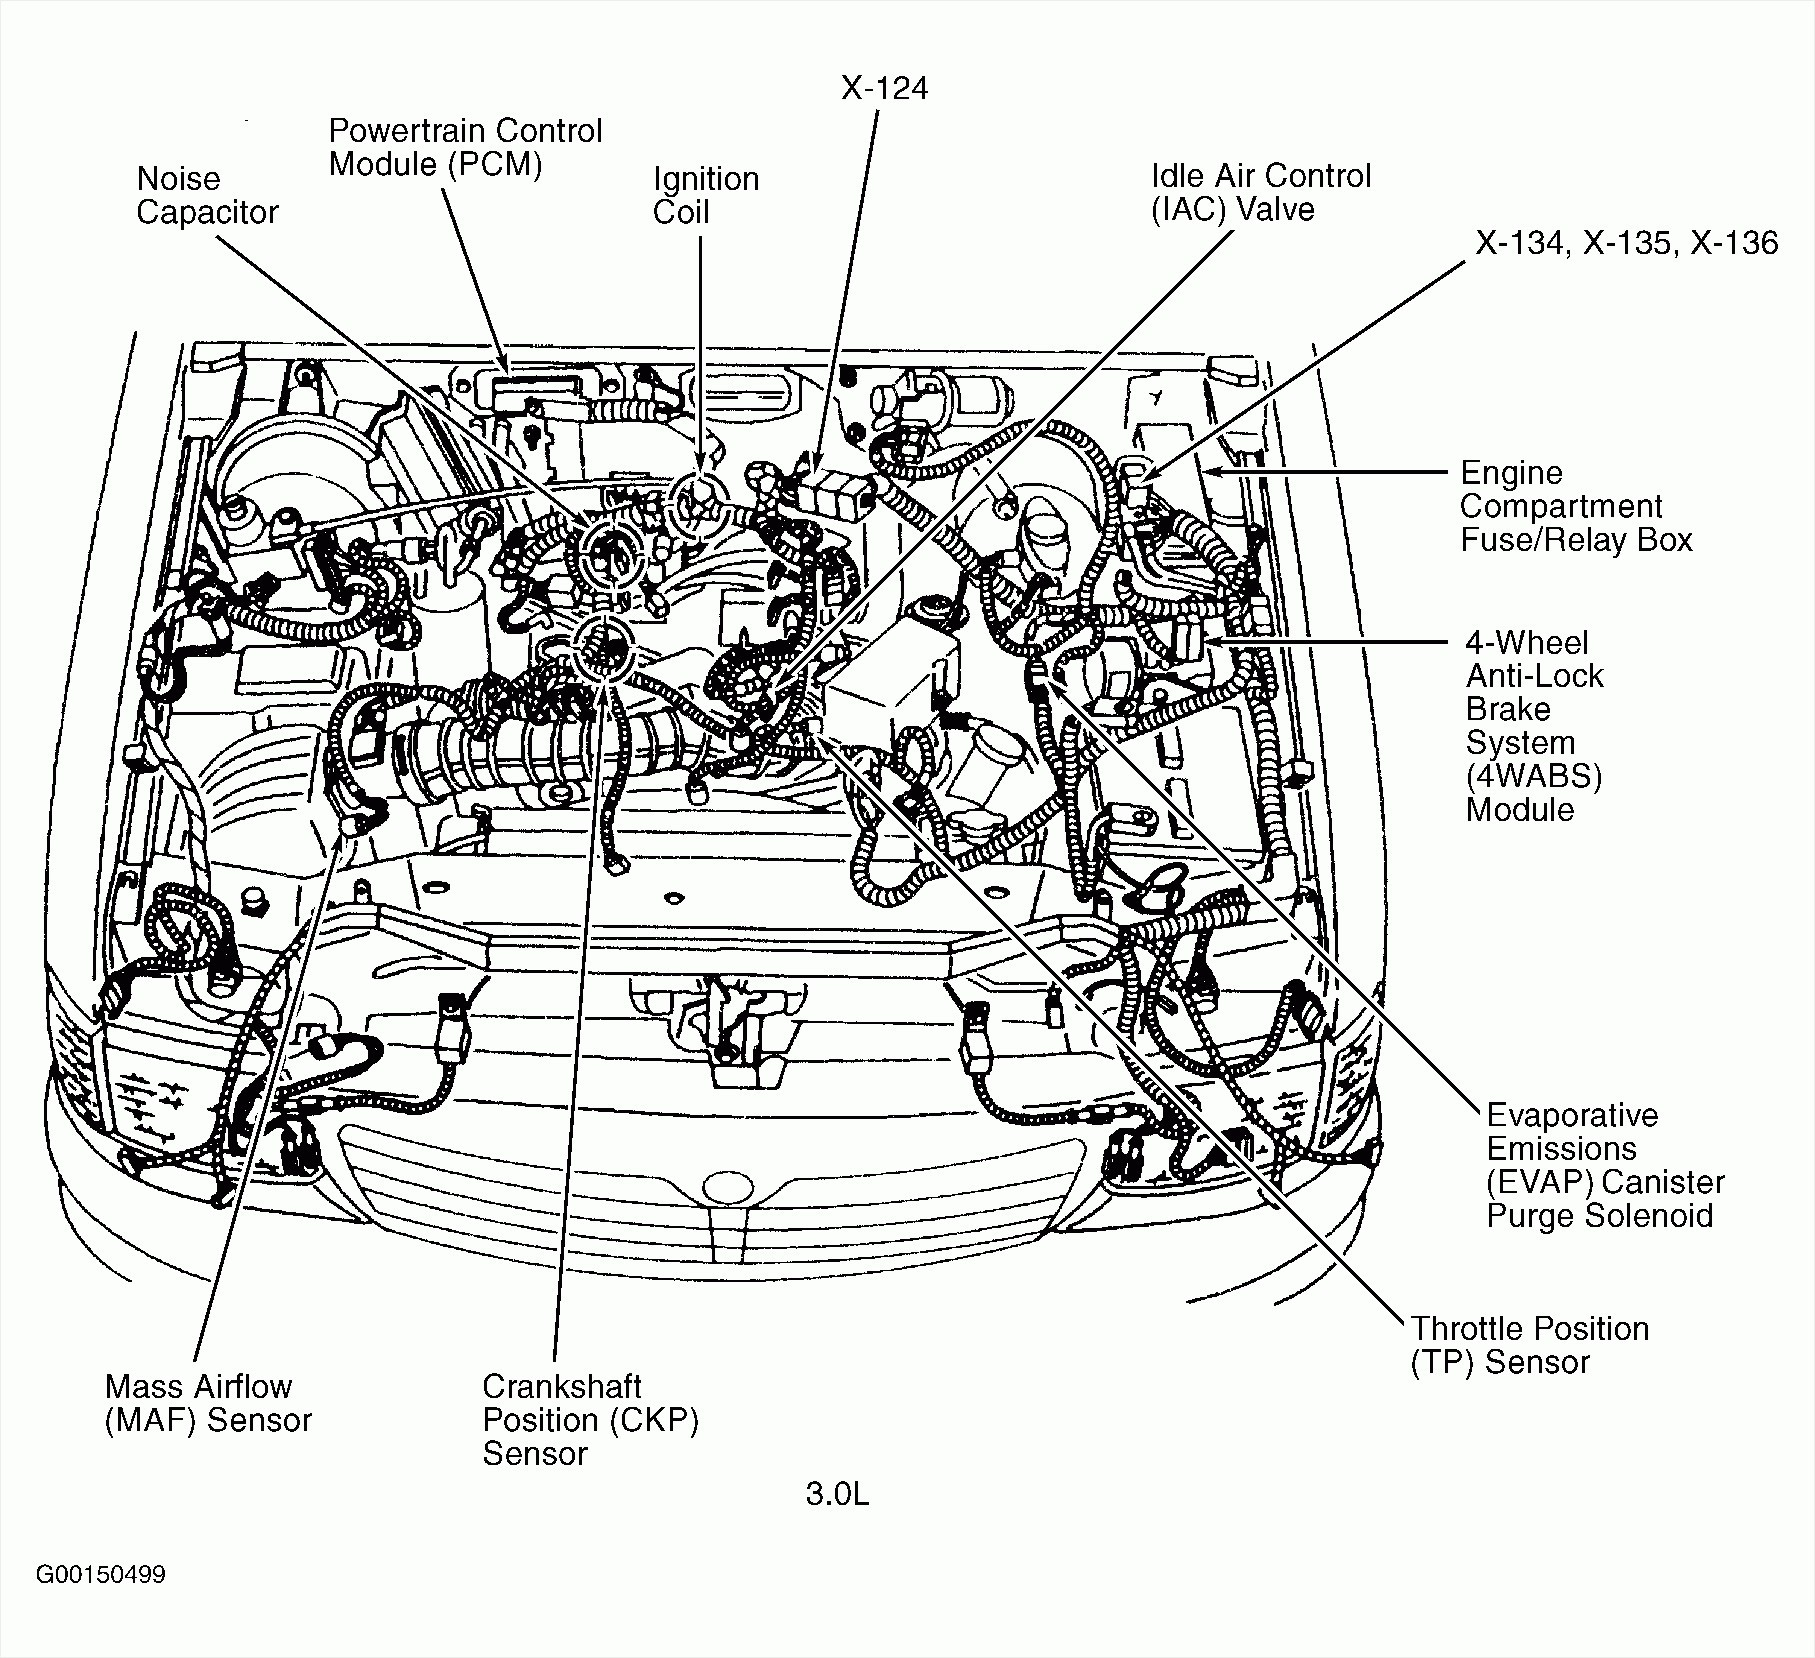 toyota v4 engine diagram schematics wiring diagrams u2022 rh seniorlivinguniversity co 2008 Toyota Truck Coil Schematic 2008 Toyota Camry Wiring Diagram